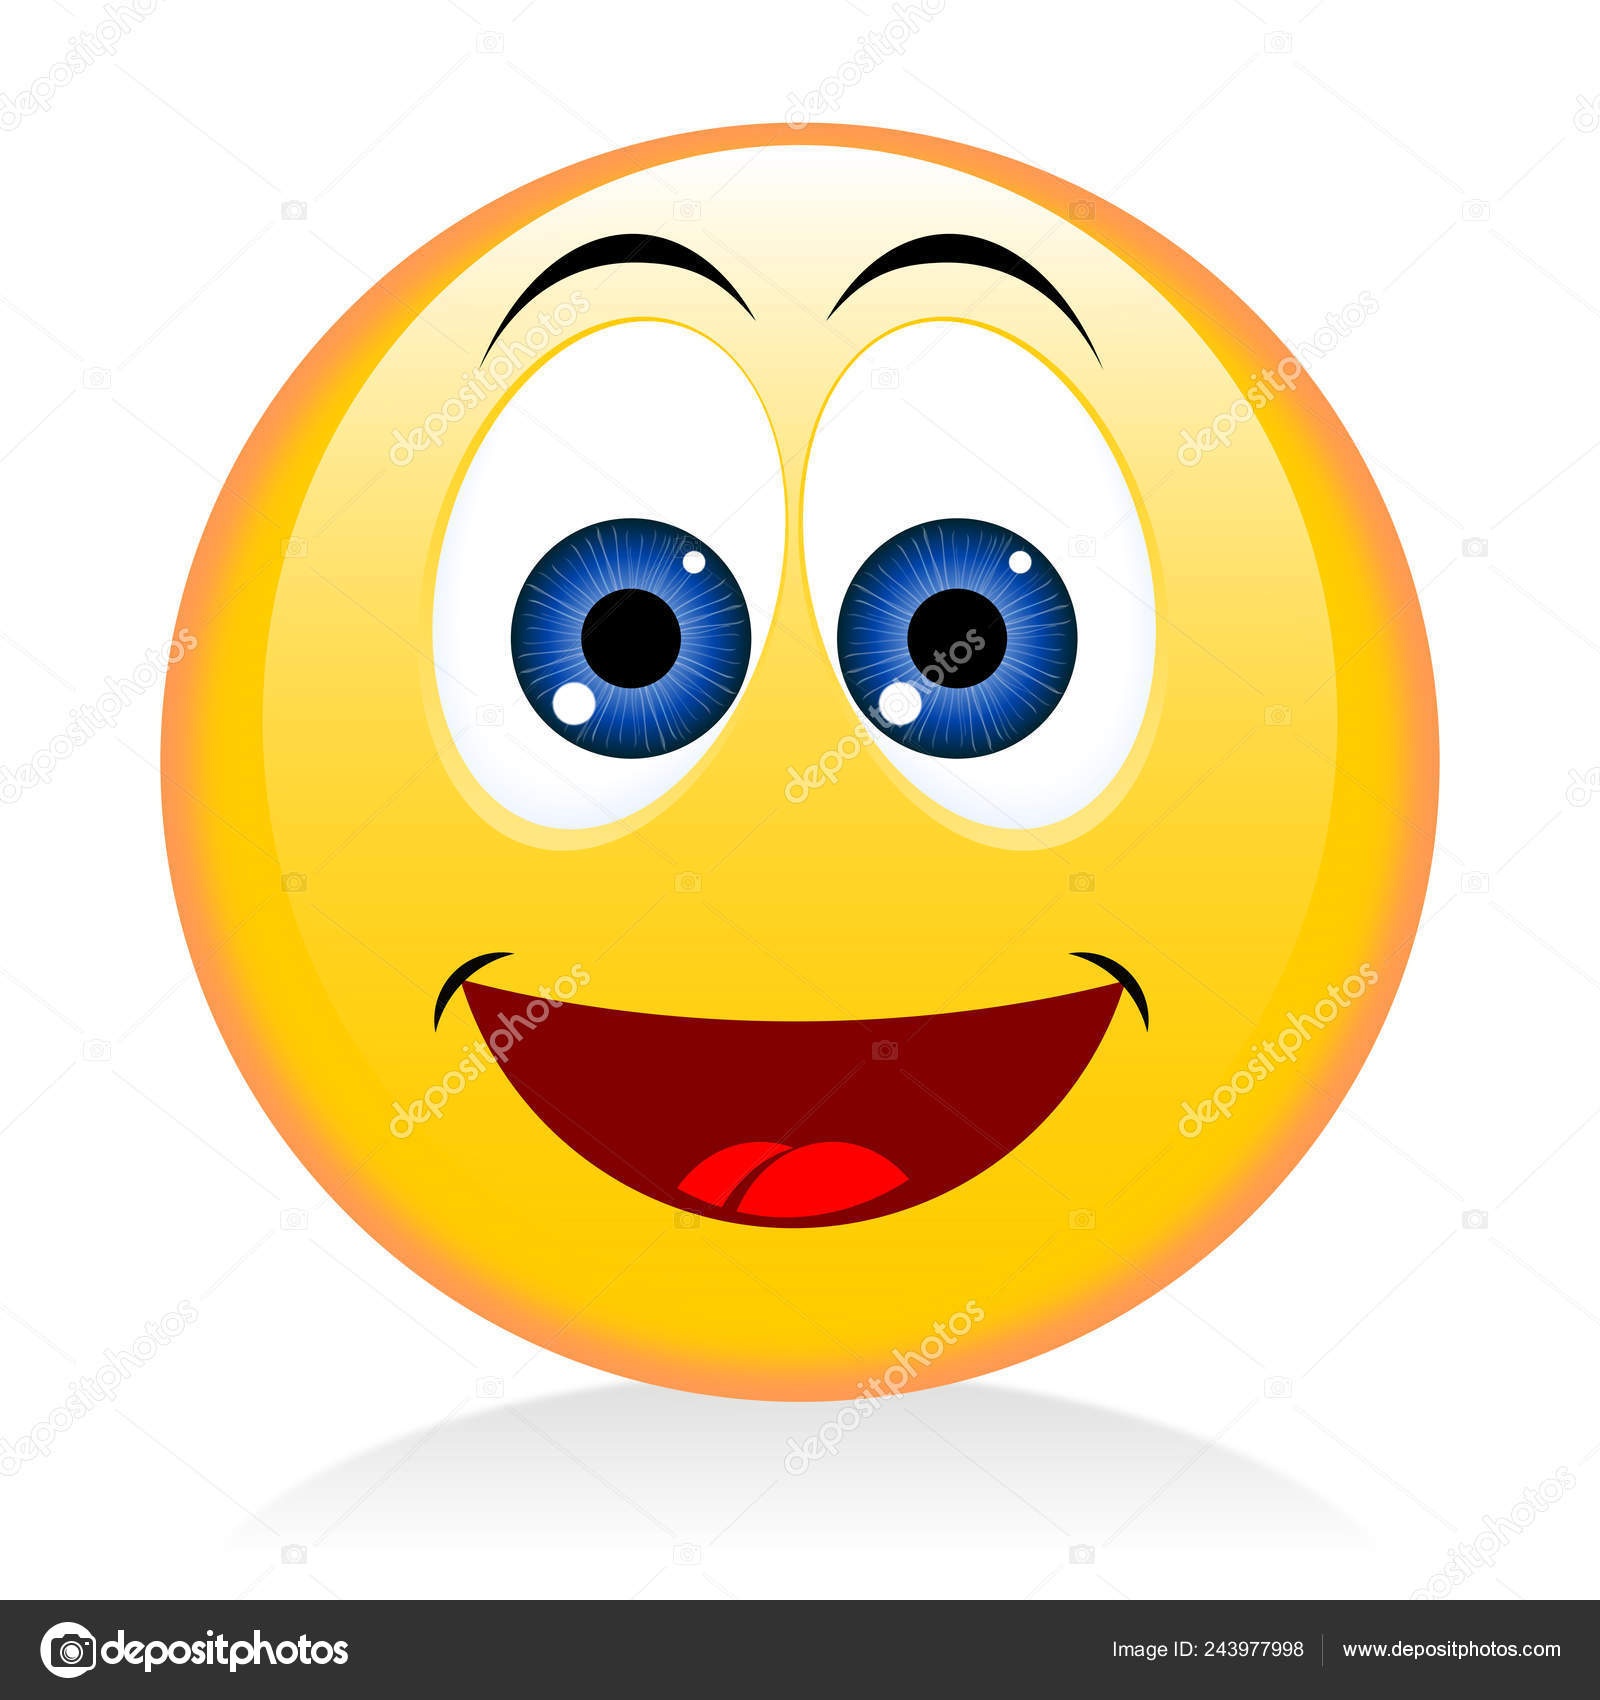 Emoji Emoticon Happy Funny Face — Stock Photo © 3d_generator